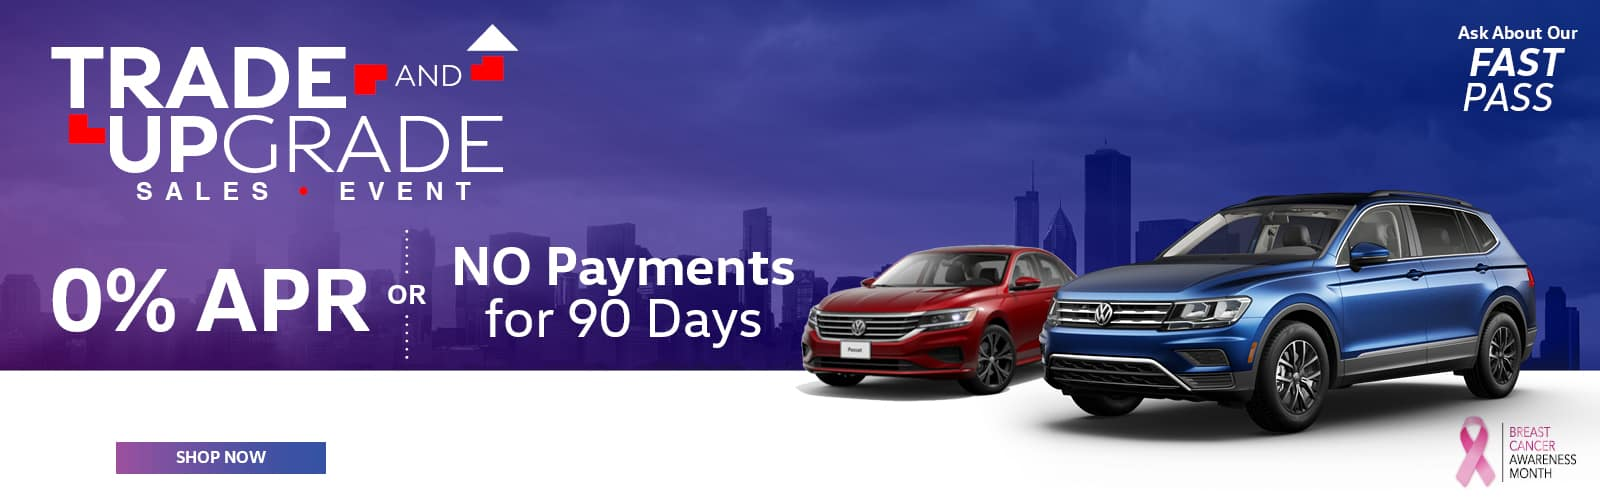 0% APR or No Payment for 90 Days